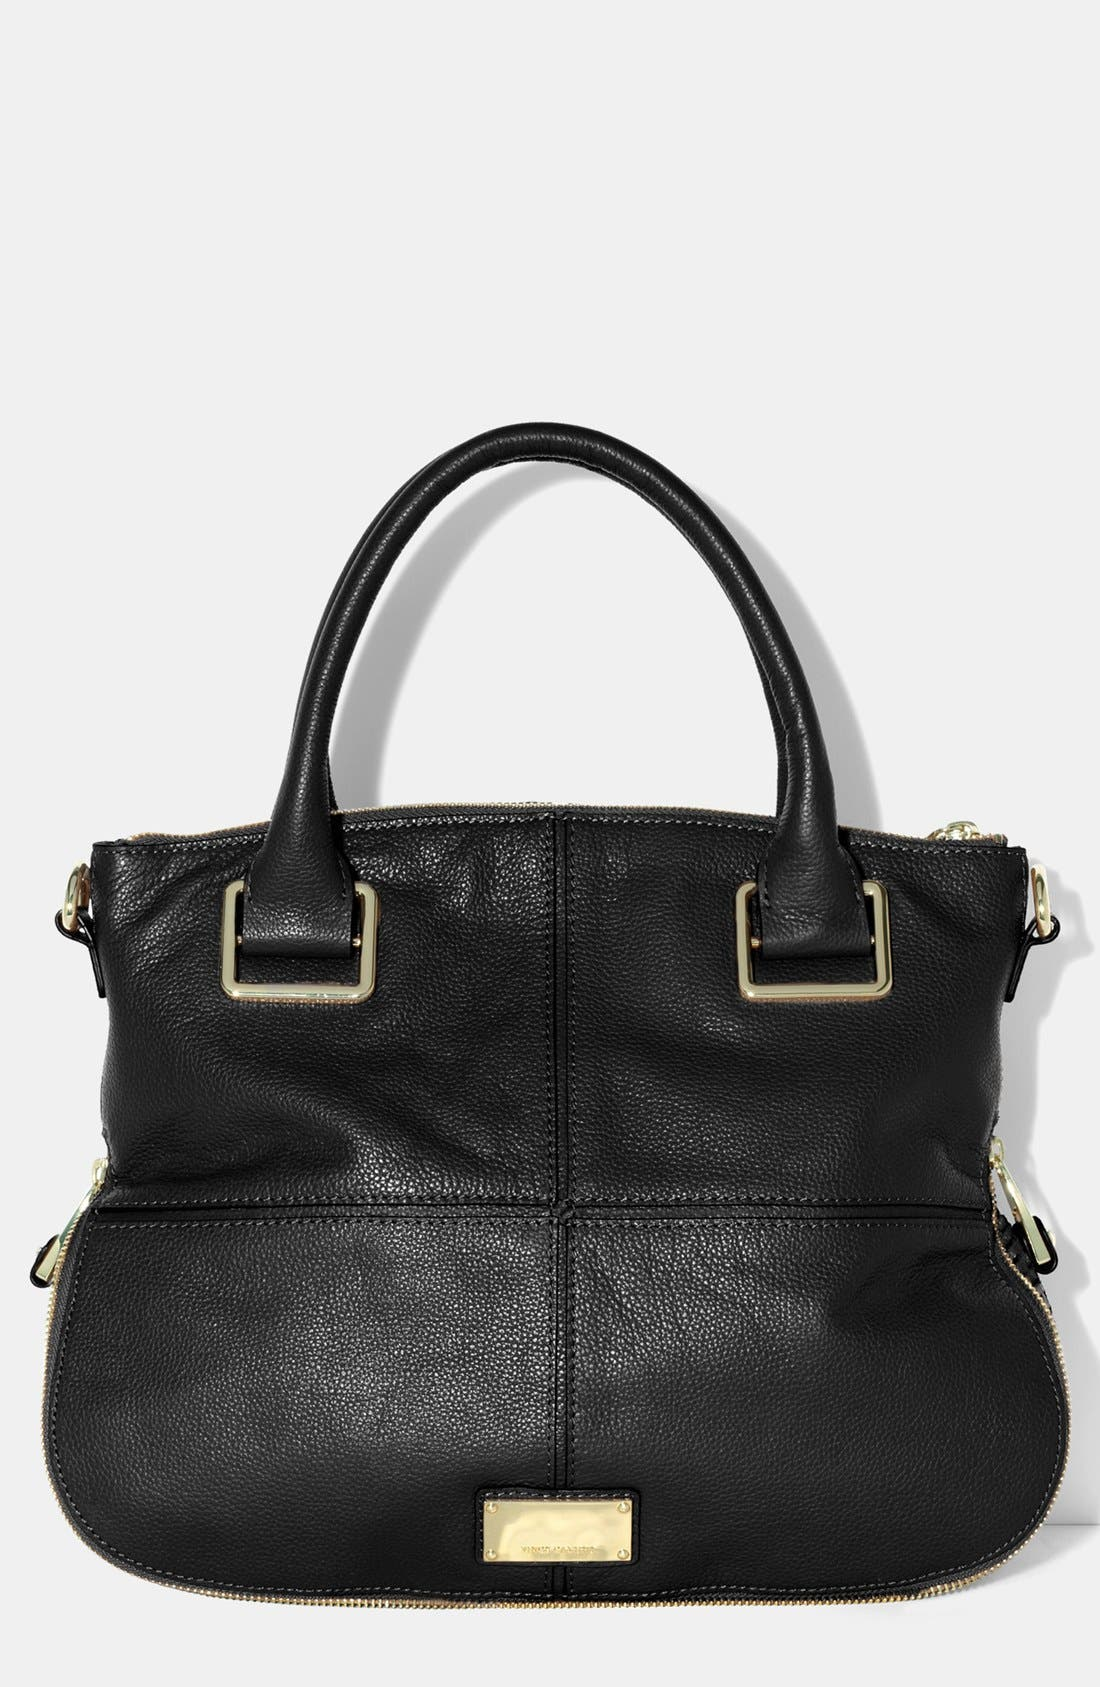 Main Image - Vince Camuto 'Iris' Satchel, Medium